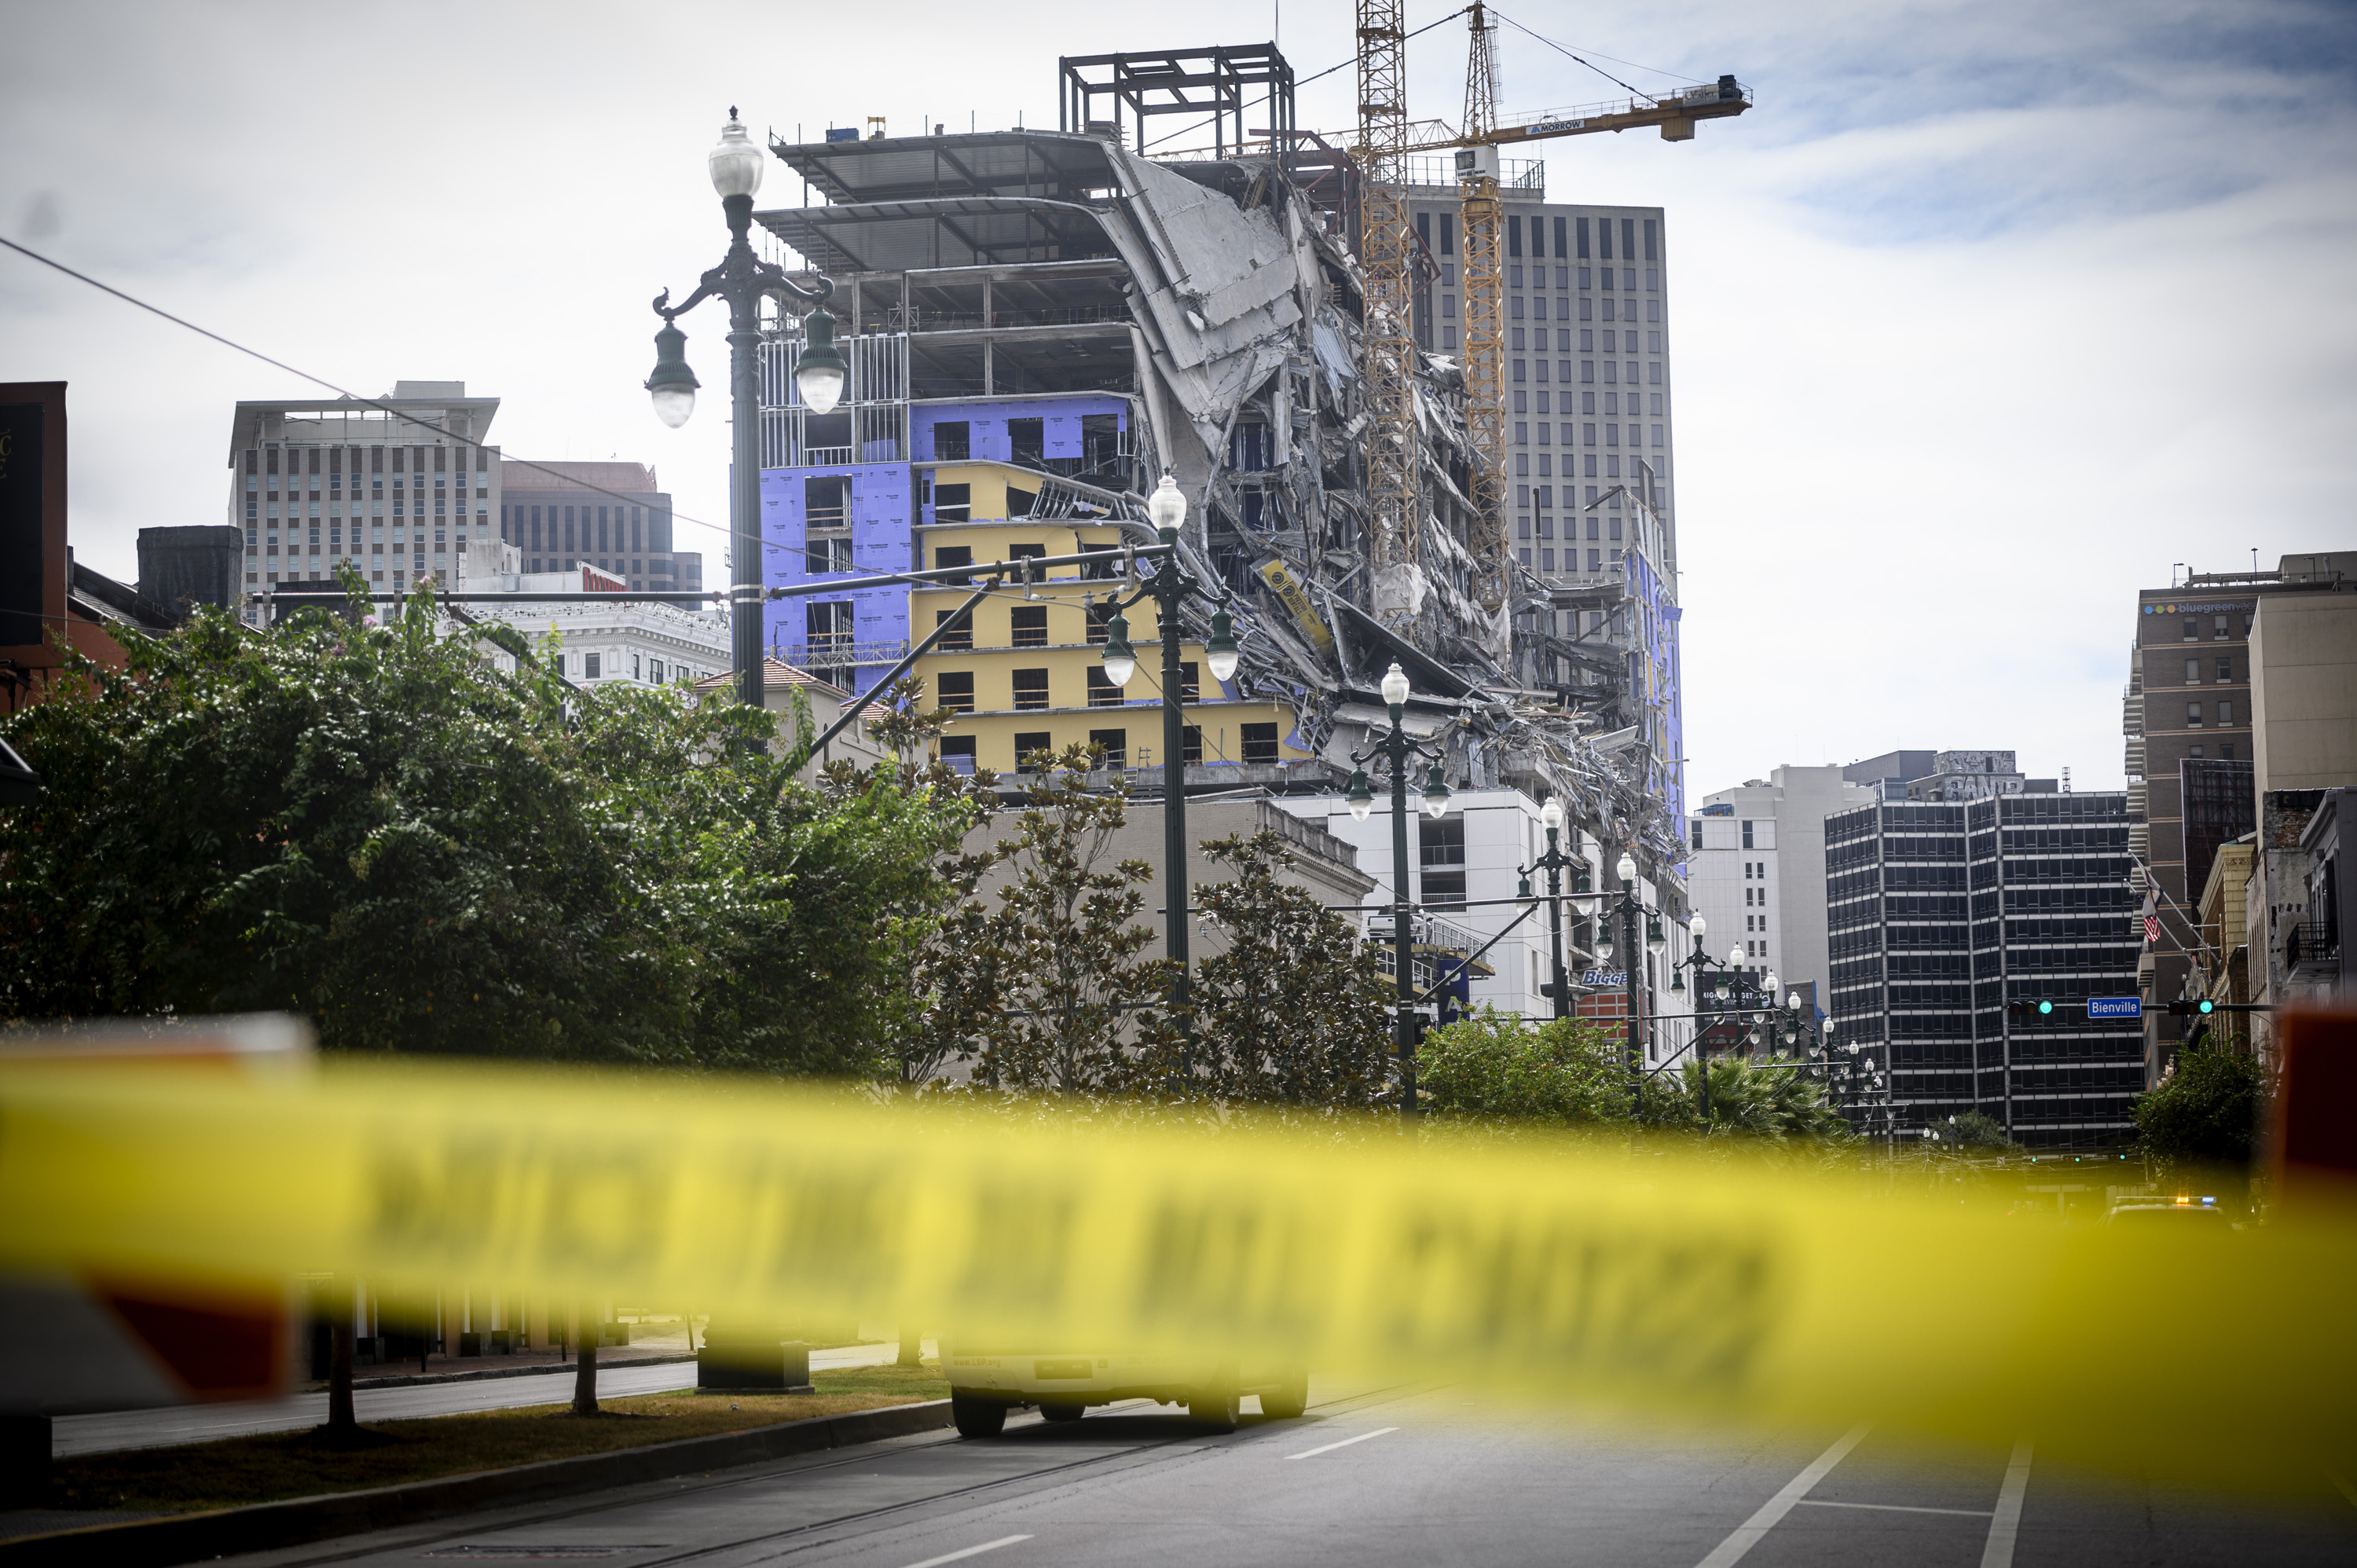 Yellow police tape with black lettering is at the foreground of a photo of a partially constructed high-rise building that has collapsed.